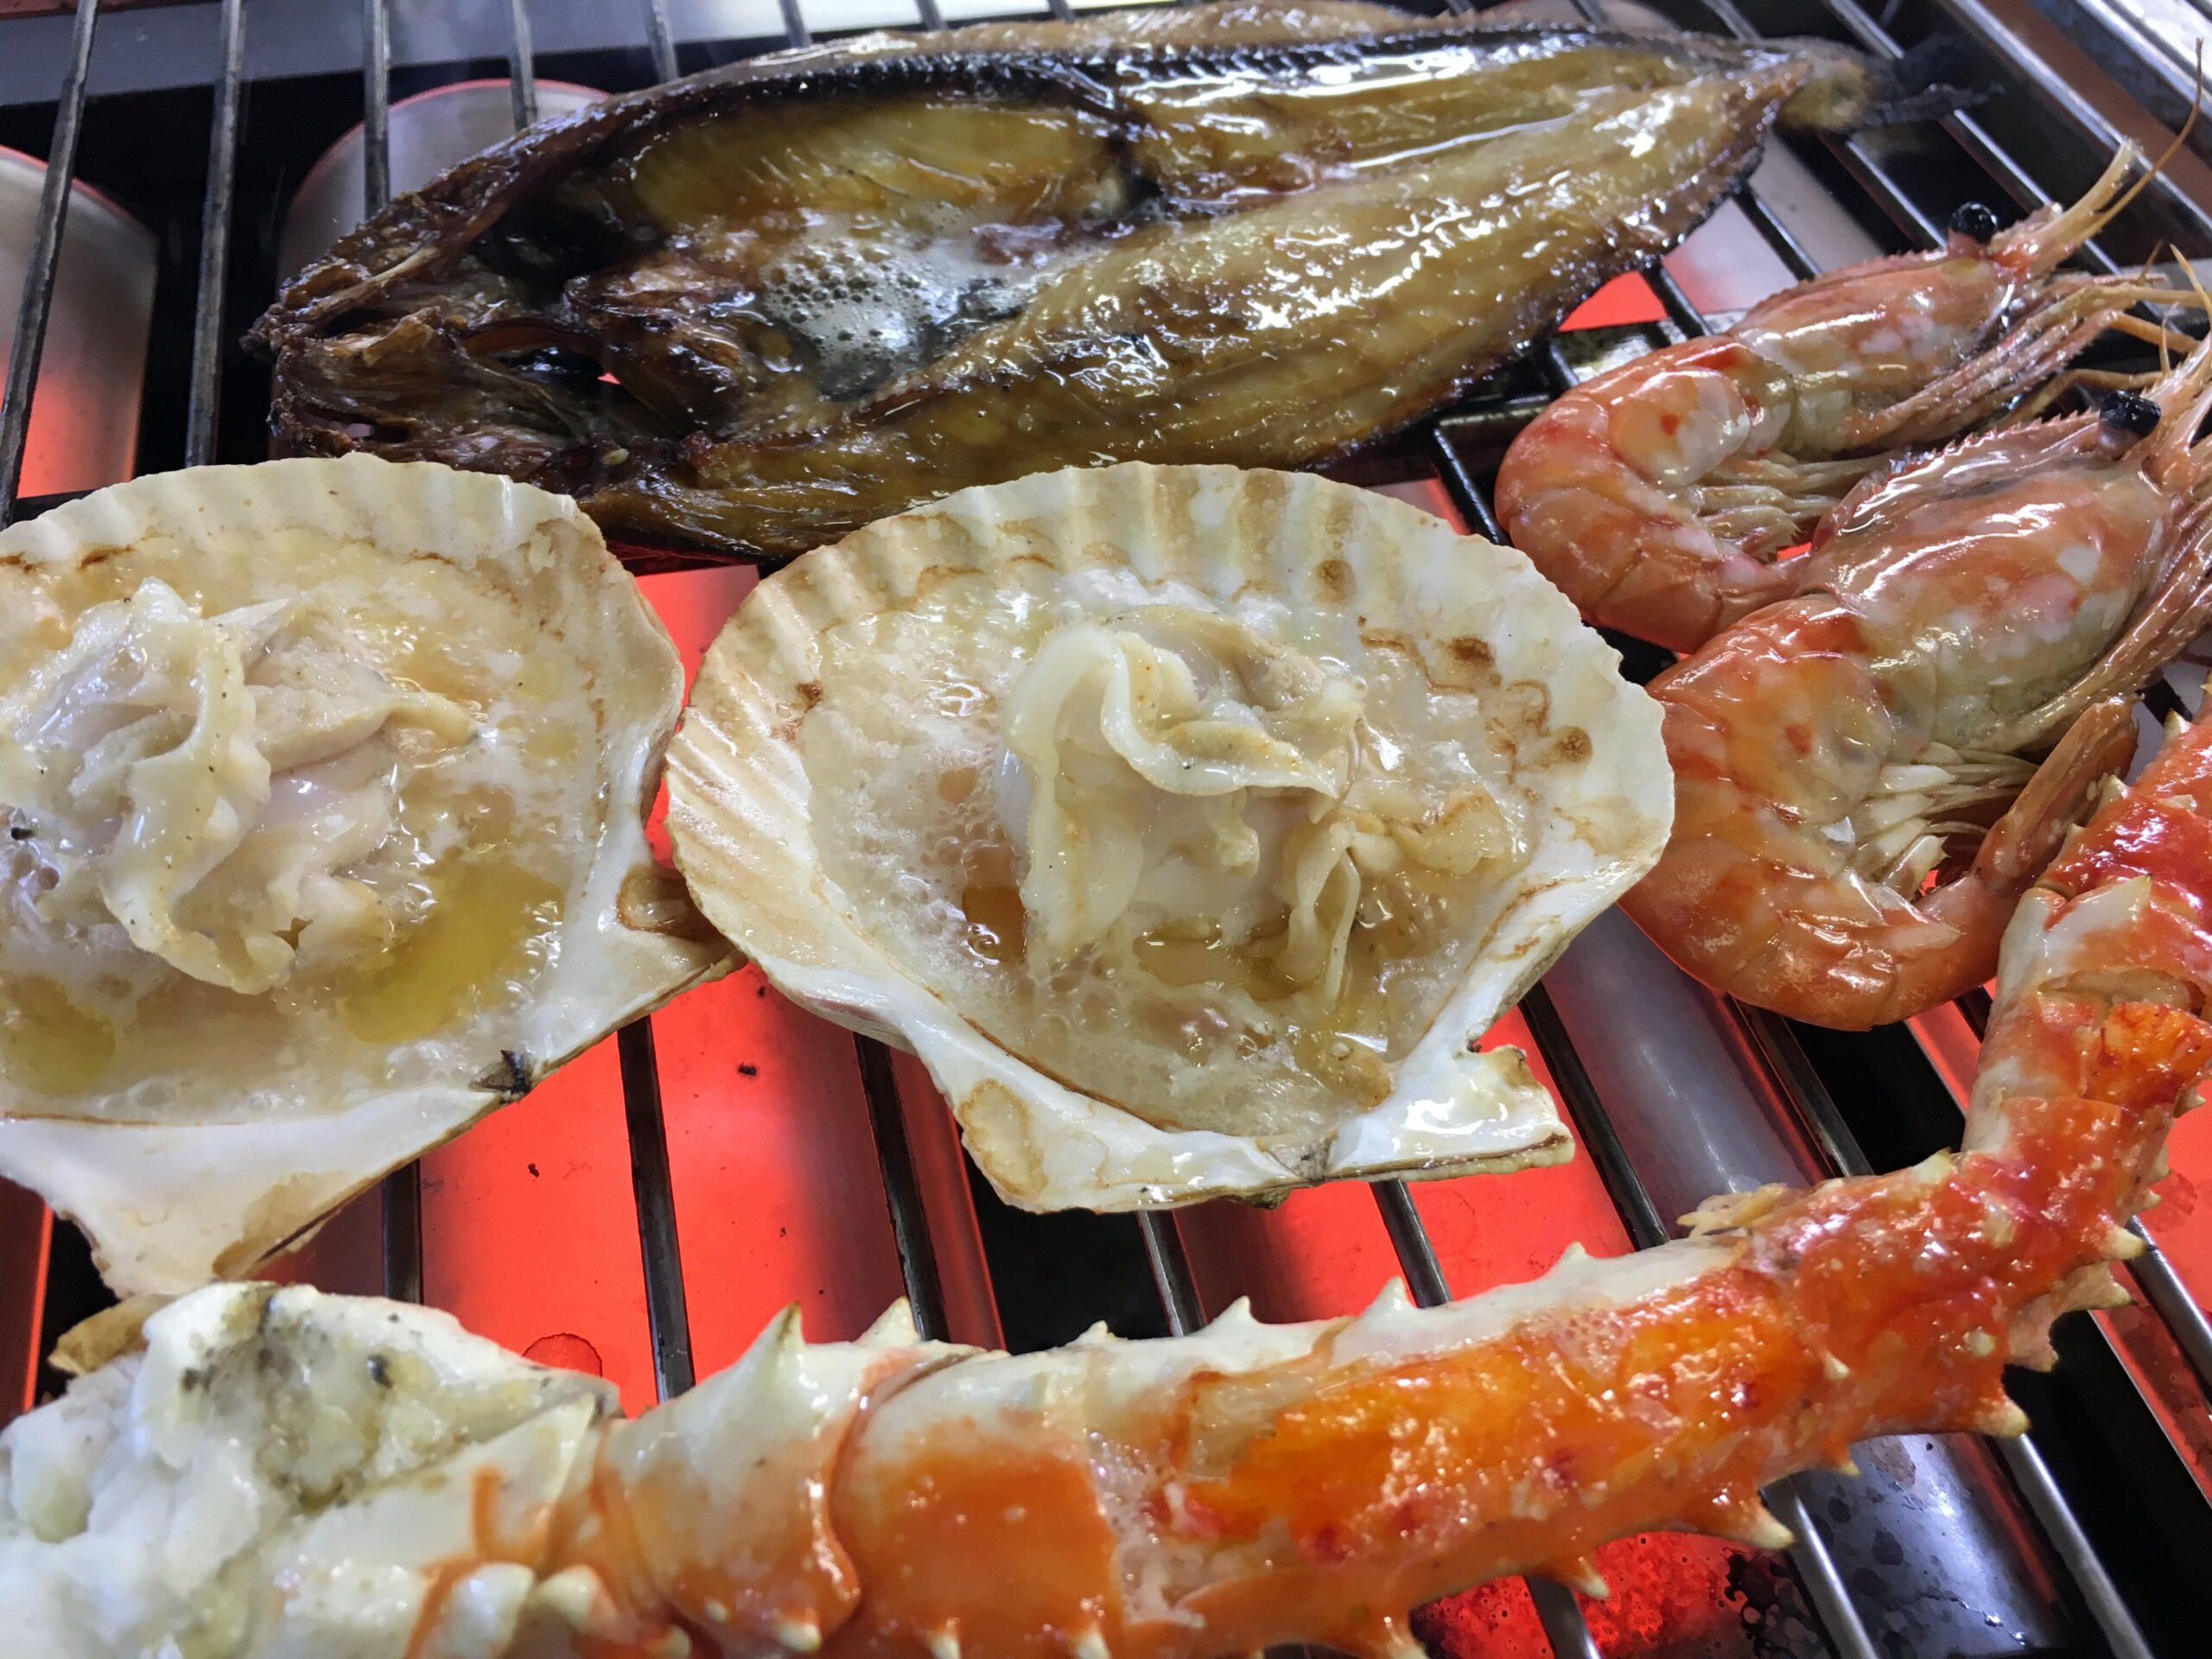 Grilled to Perfection: Dine at Marukaichi, a Fishery-owned Seafood Restaurant